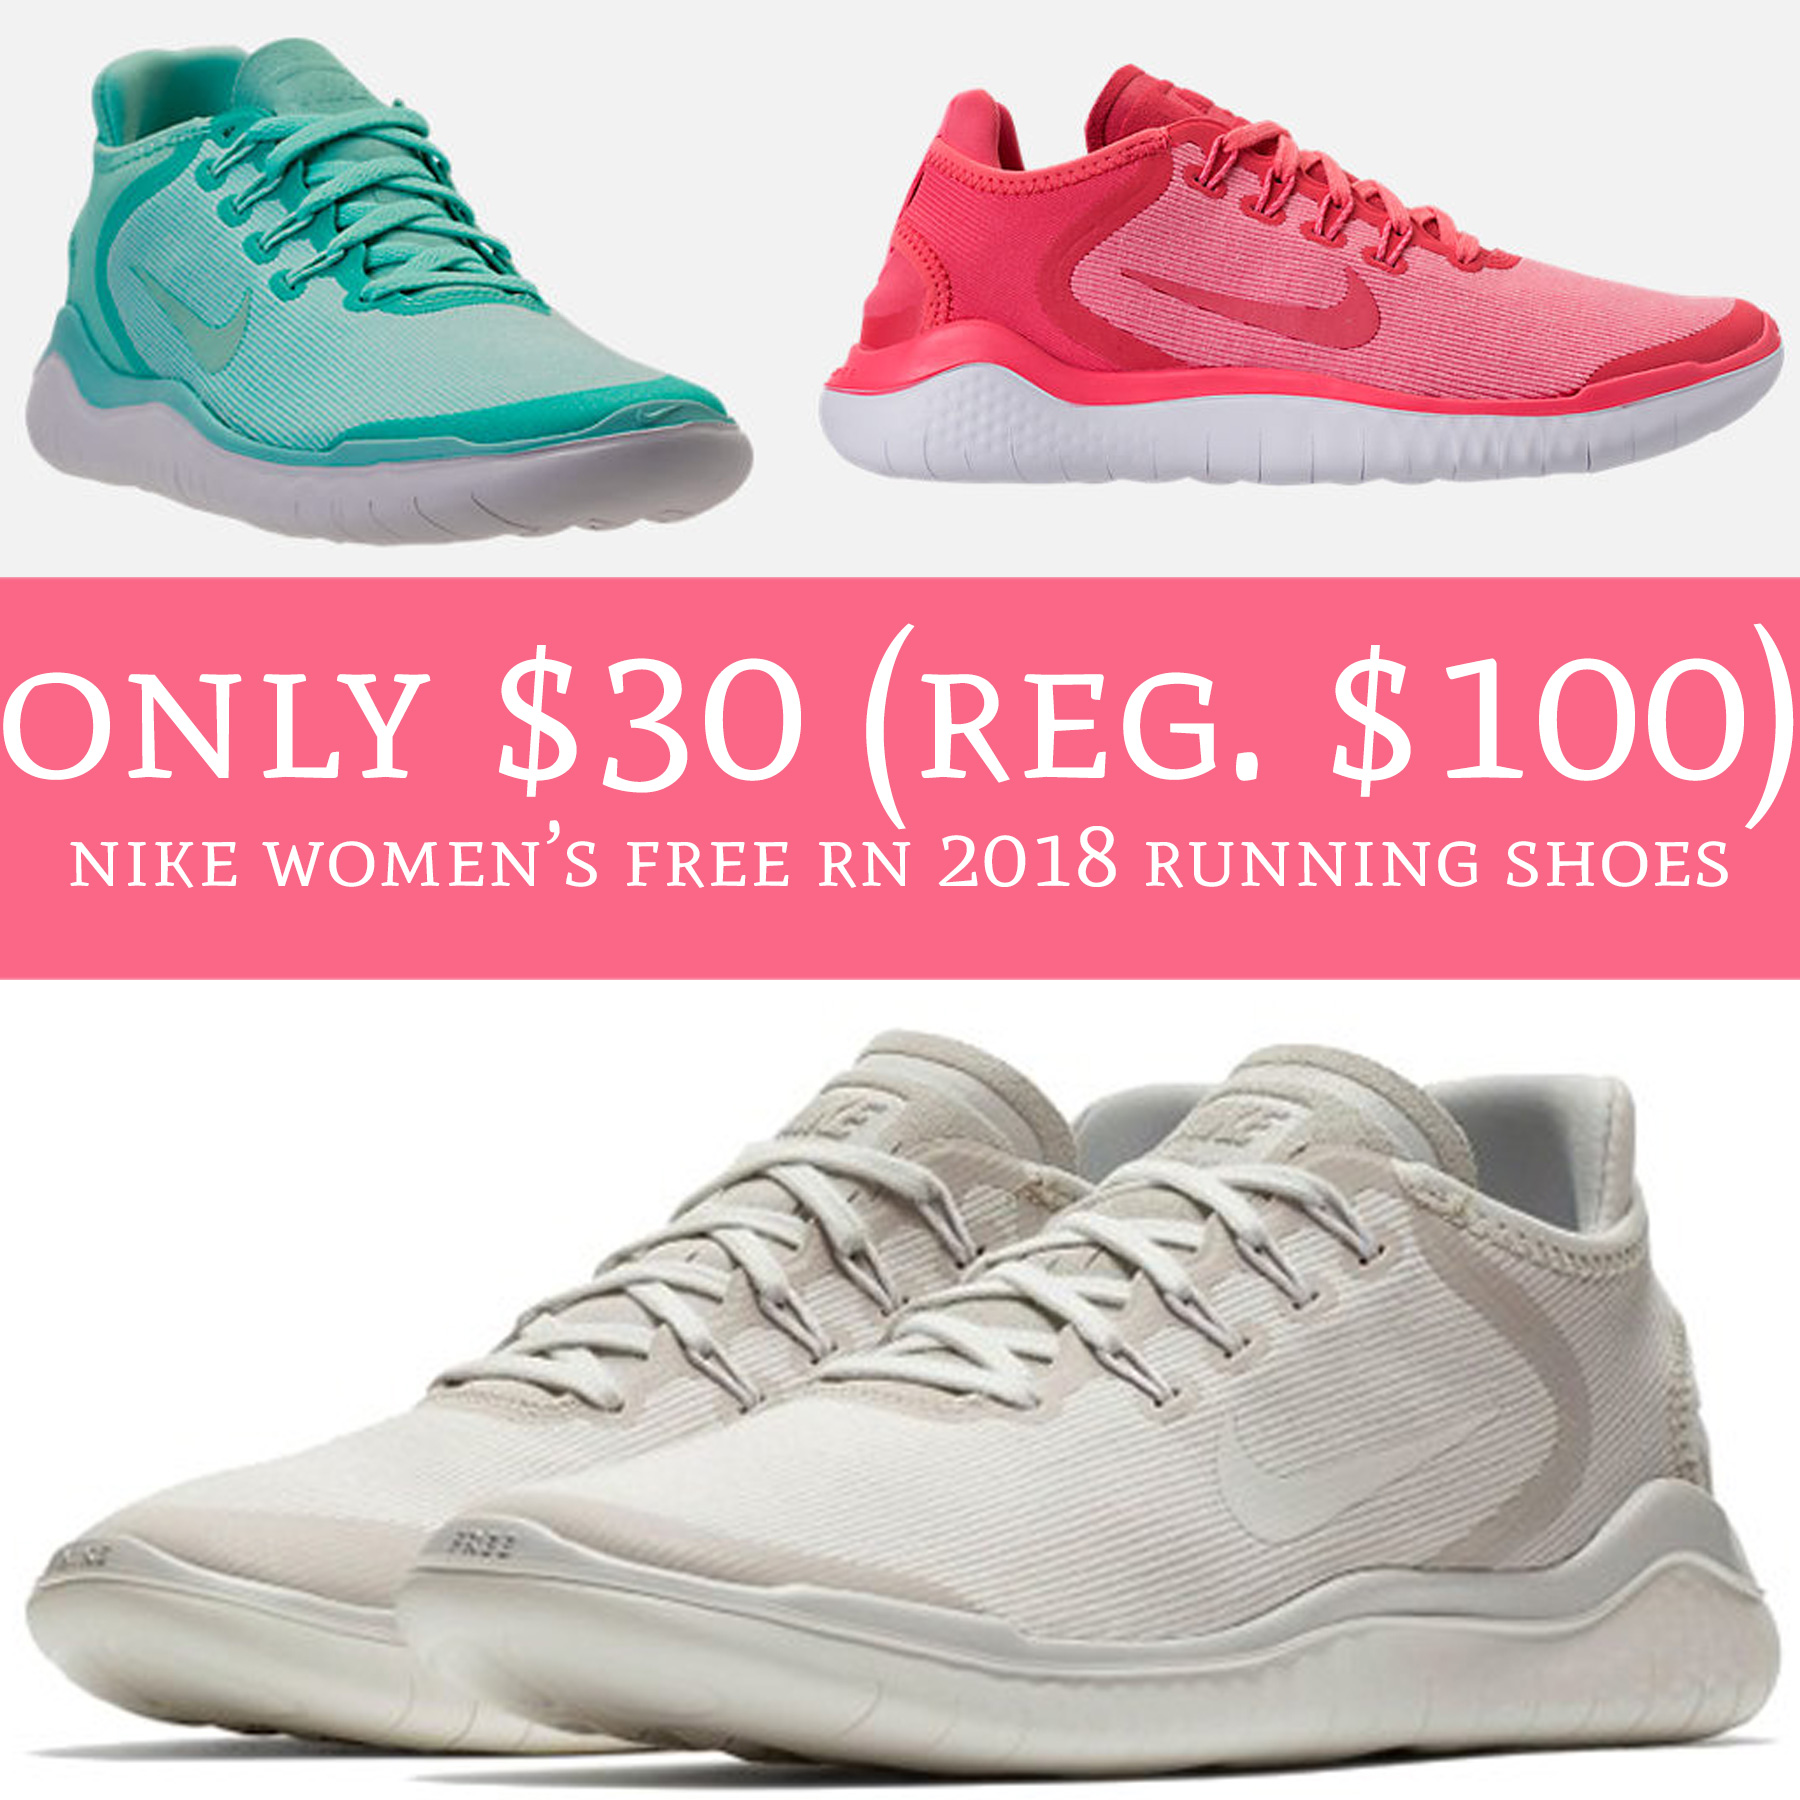 791d7020cb5 RUN! These won t last long!! 😱. Run over to FinishLine.com where you can  order Nike Women s Free RN 2018 Running Shoes ...